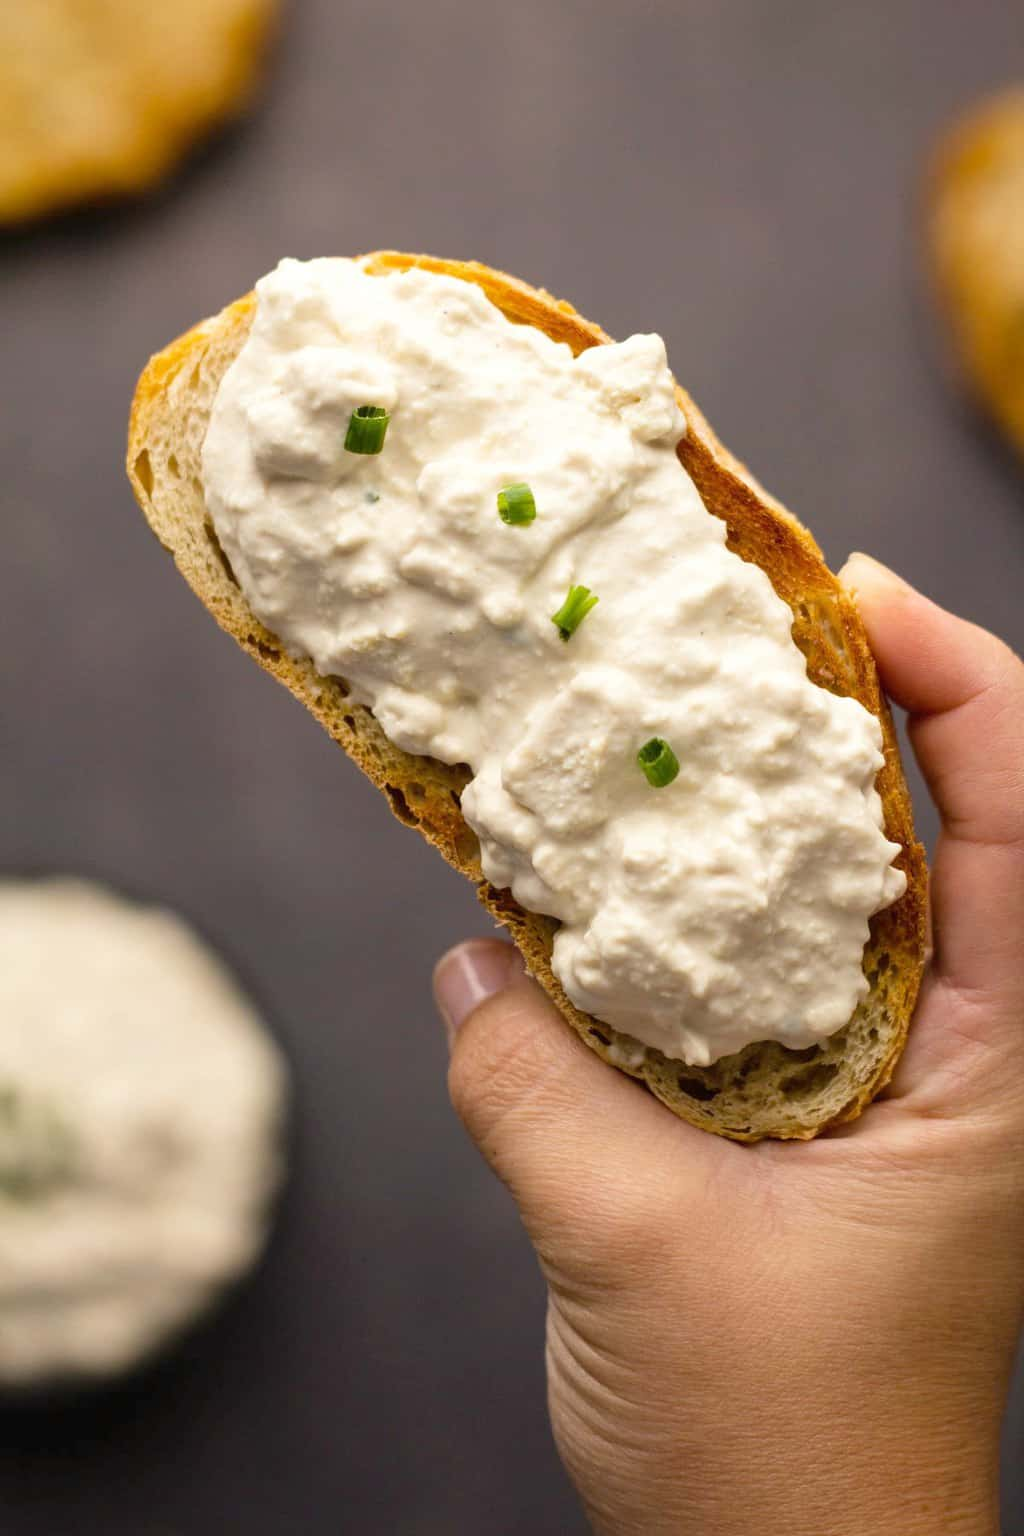 Vegan cottage cheese spread thickly on a slice of toasted ciabatta.